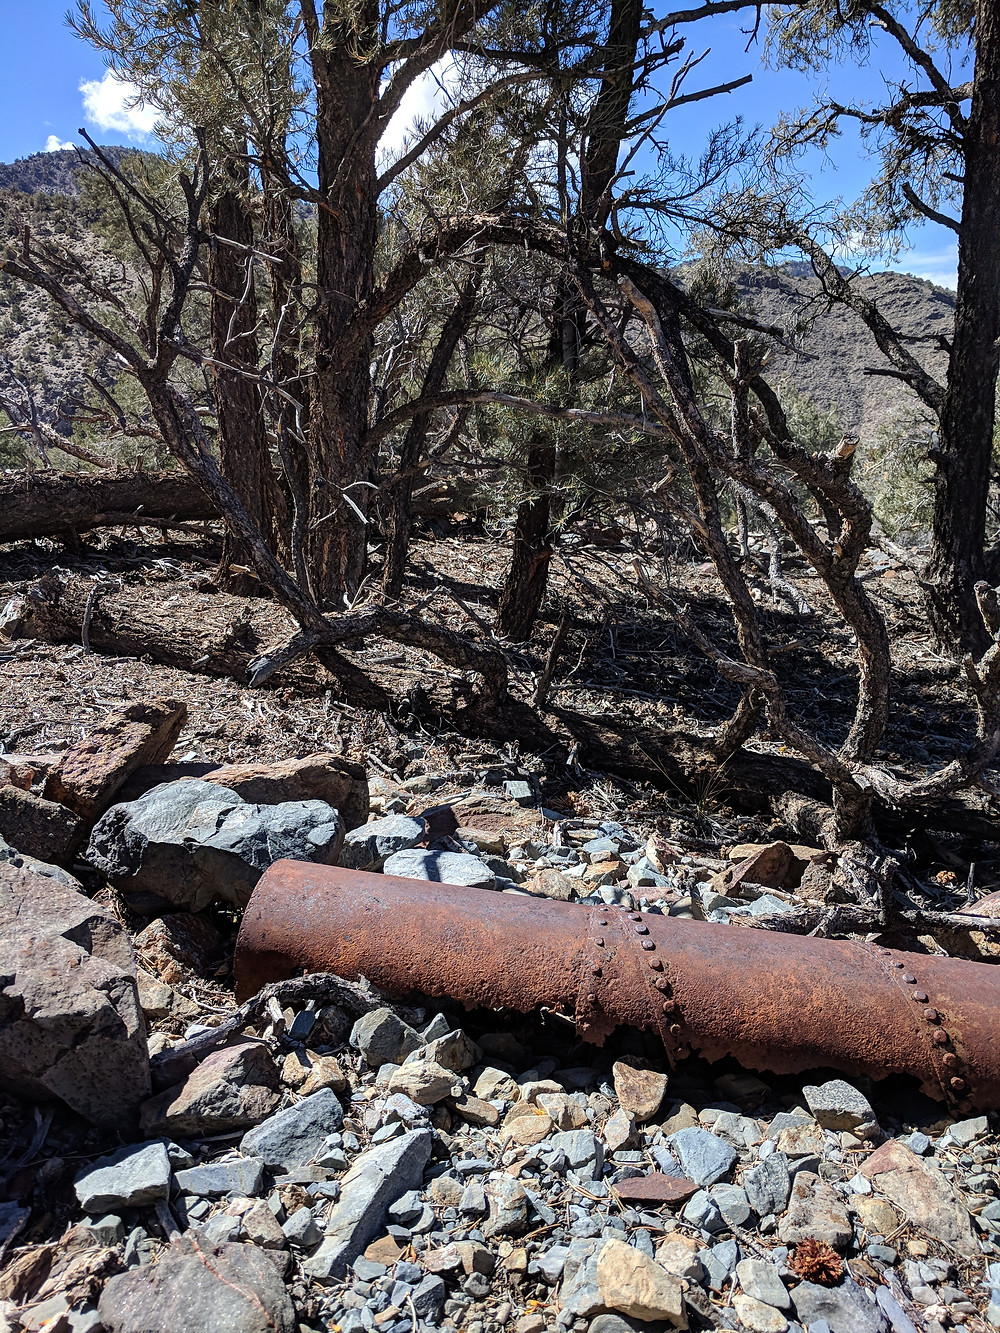 A rusty old metal pipe lays on the rocky ground, craggly-looking trees in the background.